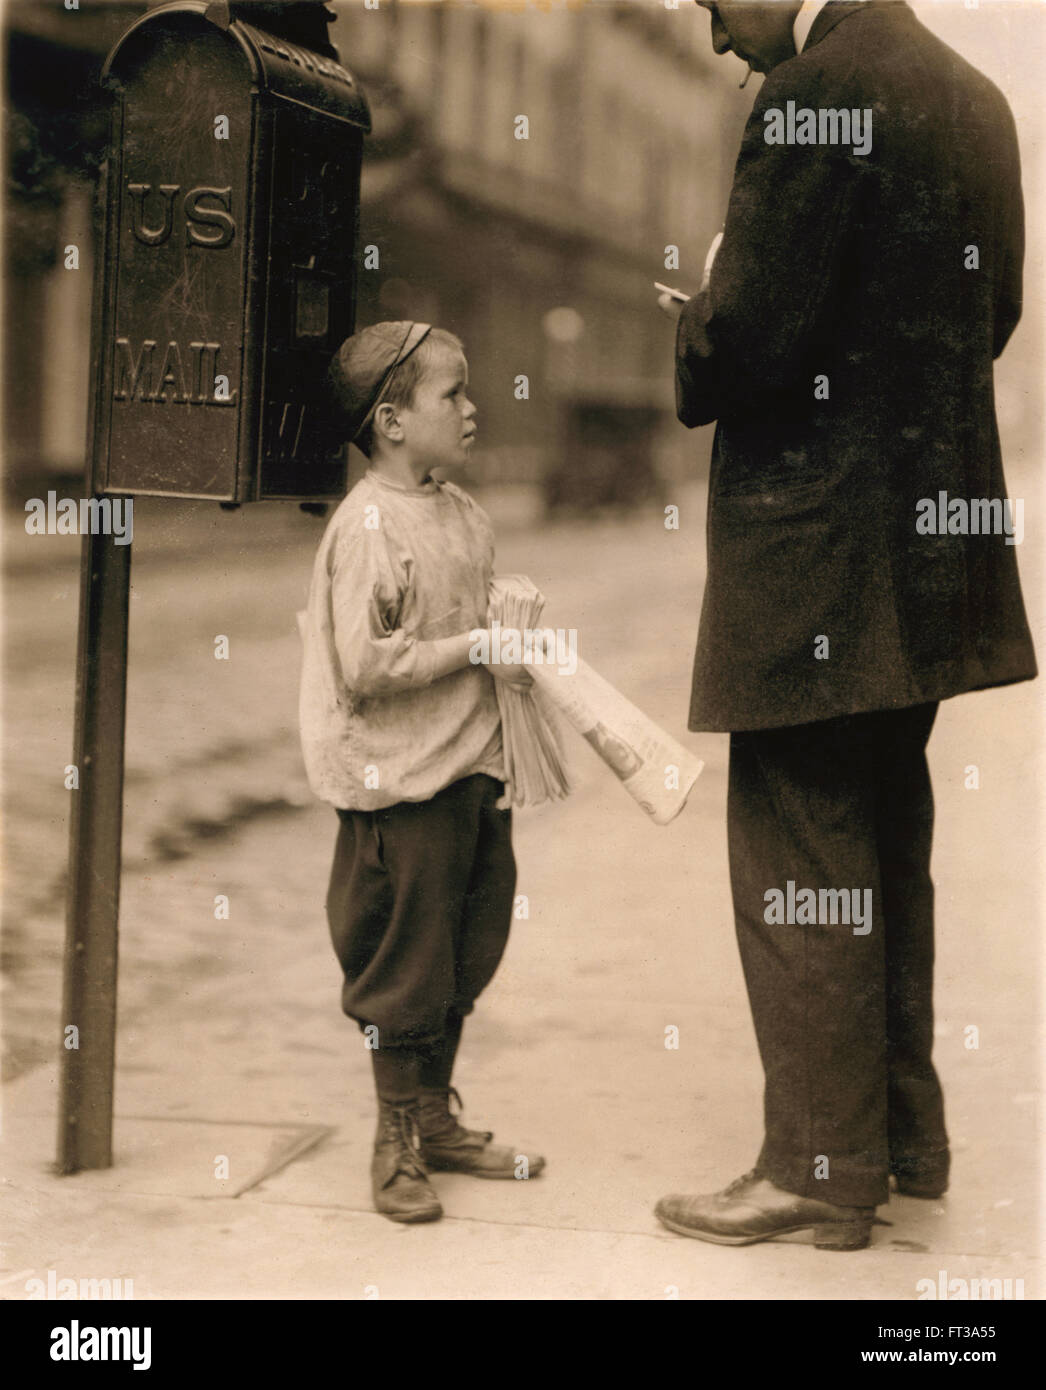 7-year-old Newsboy Selling Newspaper to Man Works Every Day 2:30 to 8pm 10am to Midnight on Saturday Earning 50 - Stock Image